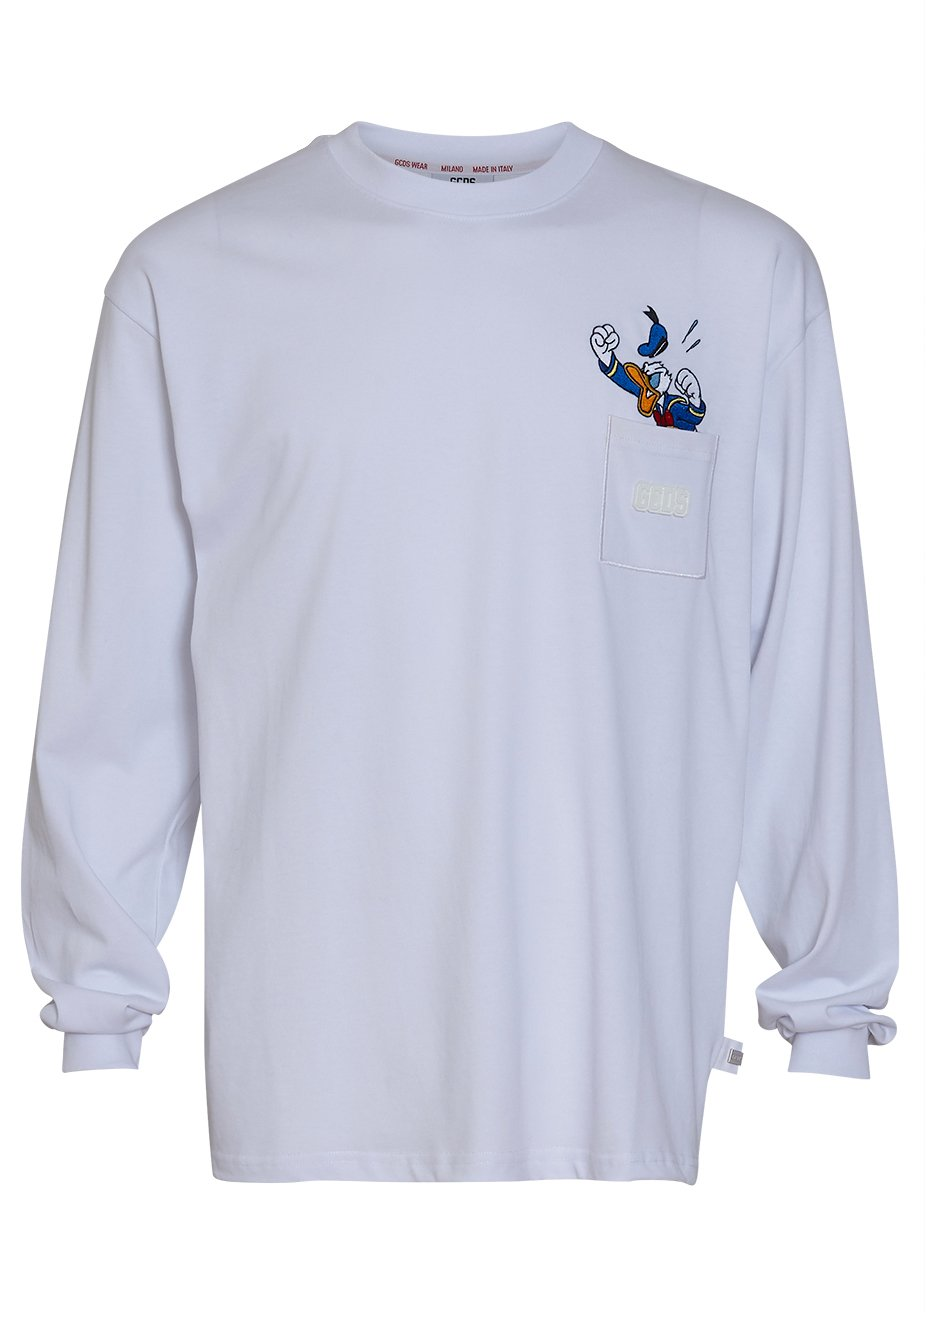 Donald Long Sleeve T-Shirt